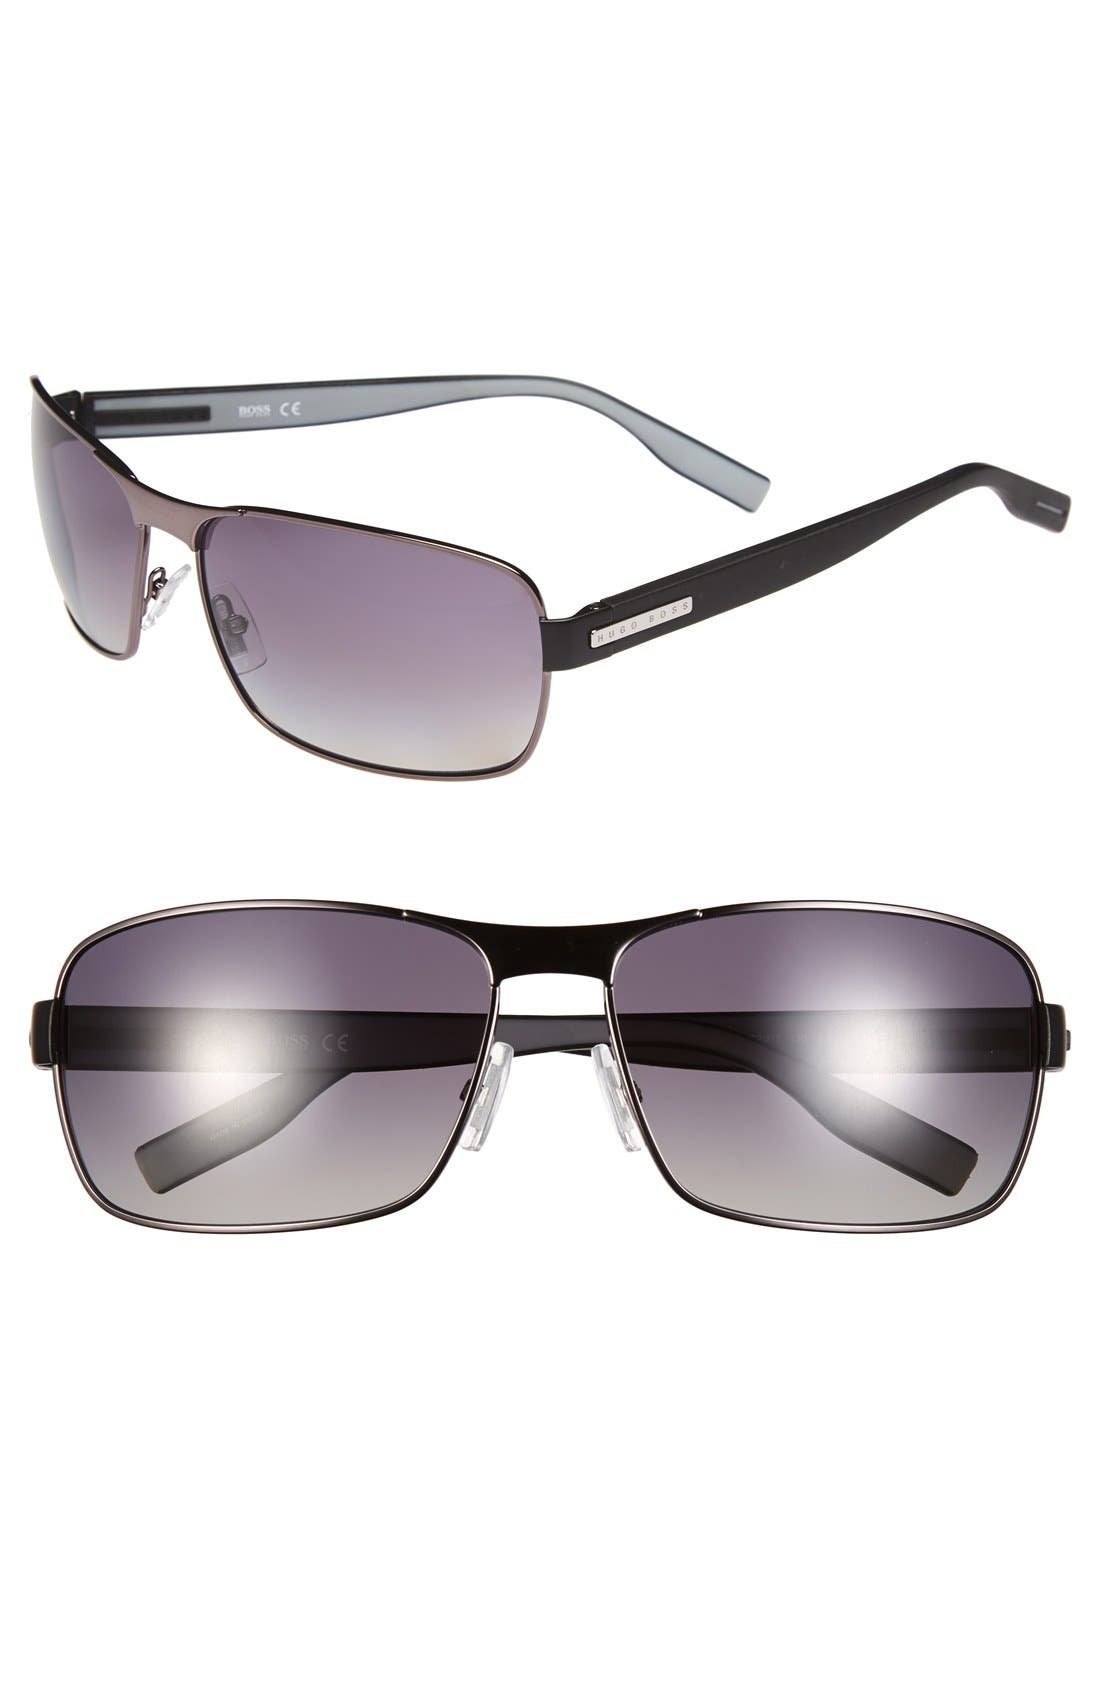 62mm Polarized Sunglasses,                             Main thumbnail 1, color,                             Dark Ruthenuim